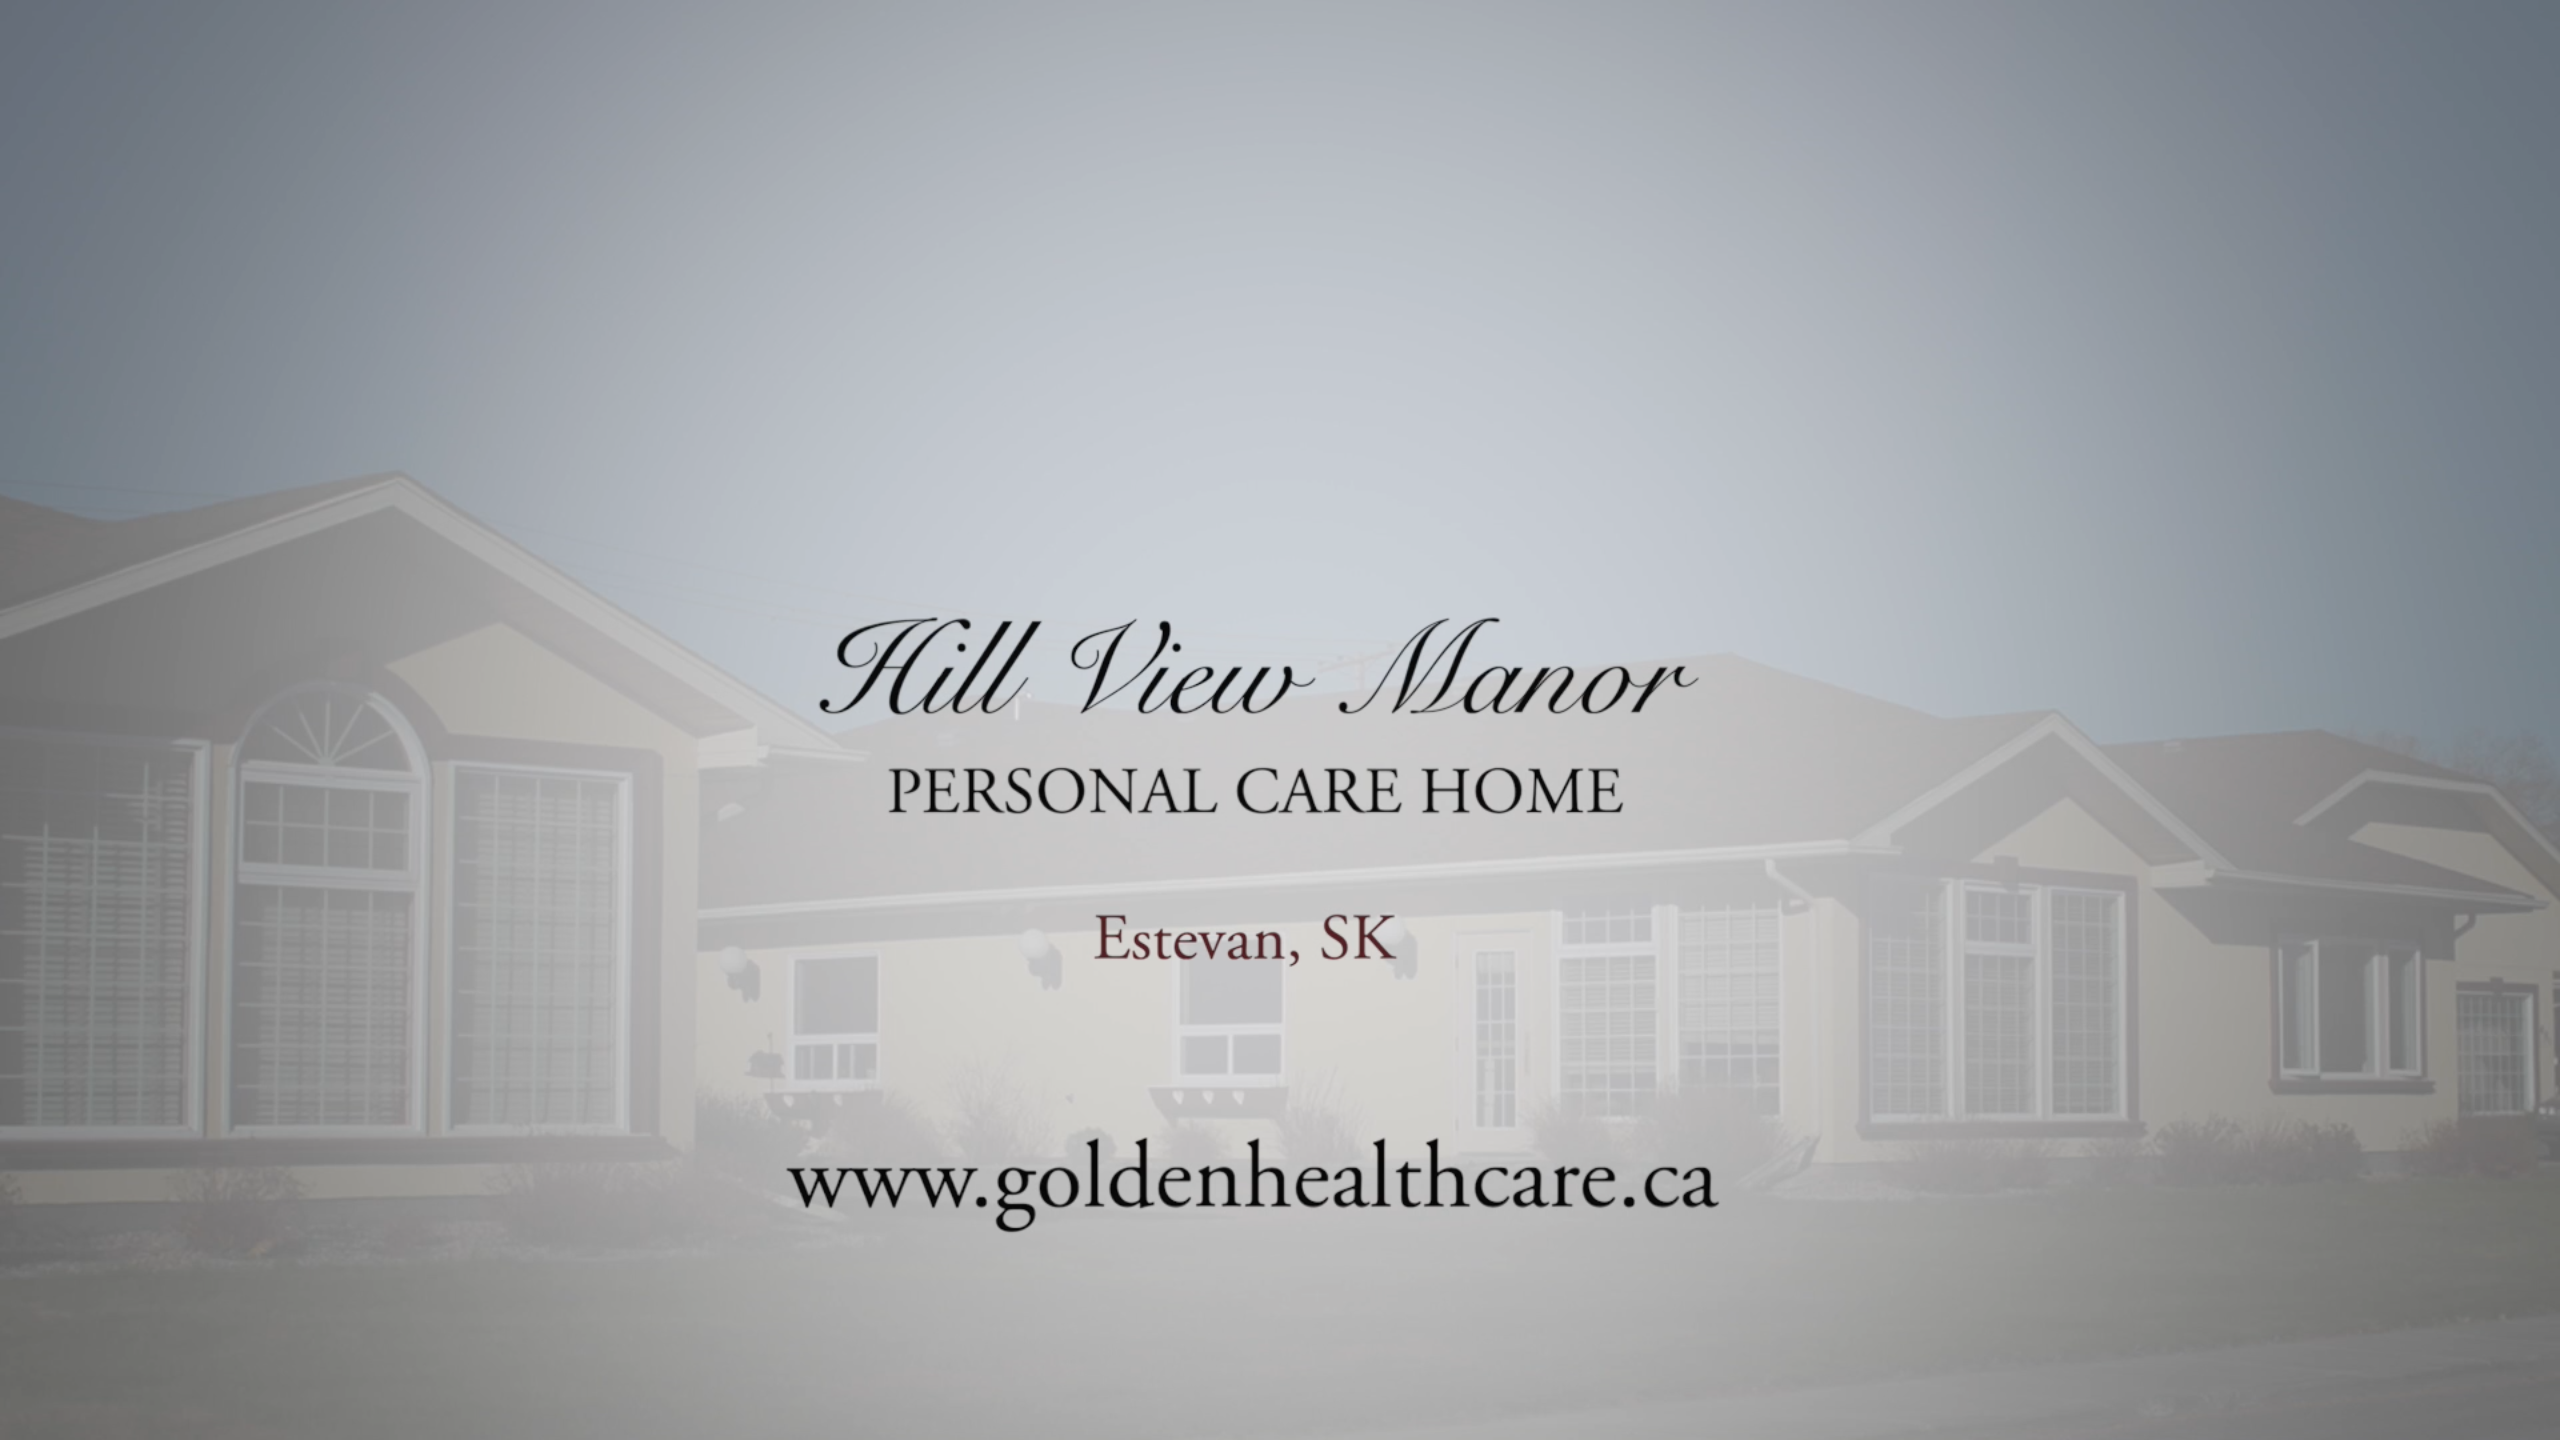 Video thumbnail for HILL VIEW MANOR